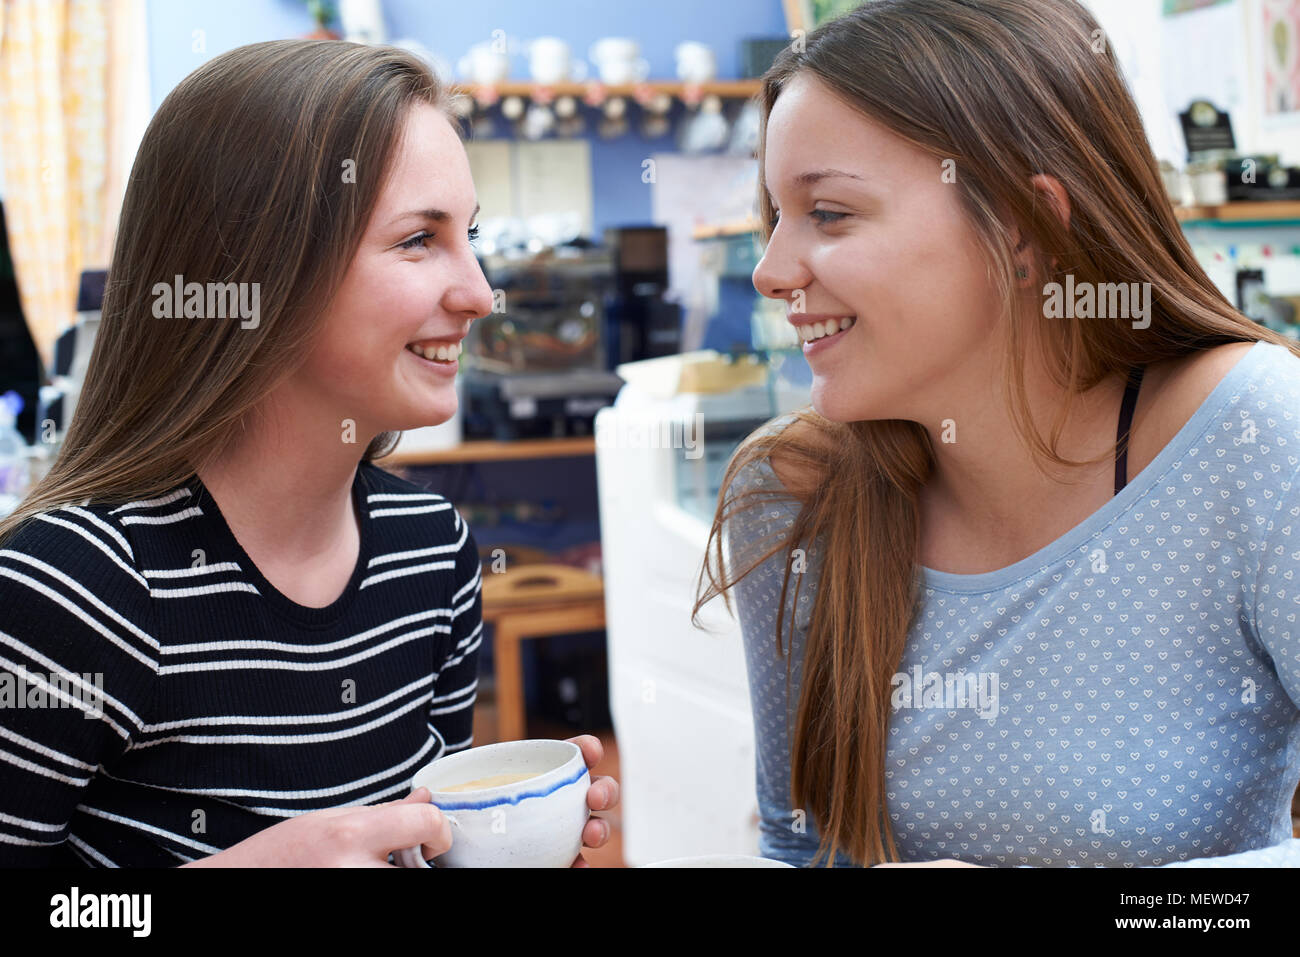 Two Female Teenage Friends Meeting In Cafe - Stock Image